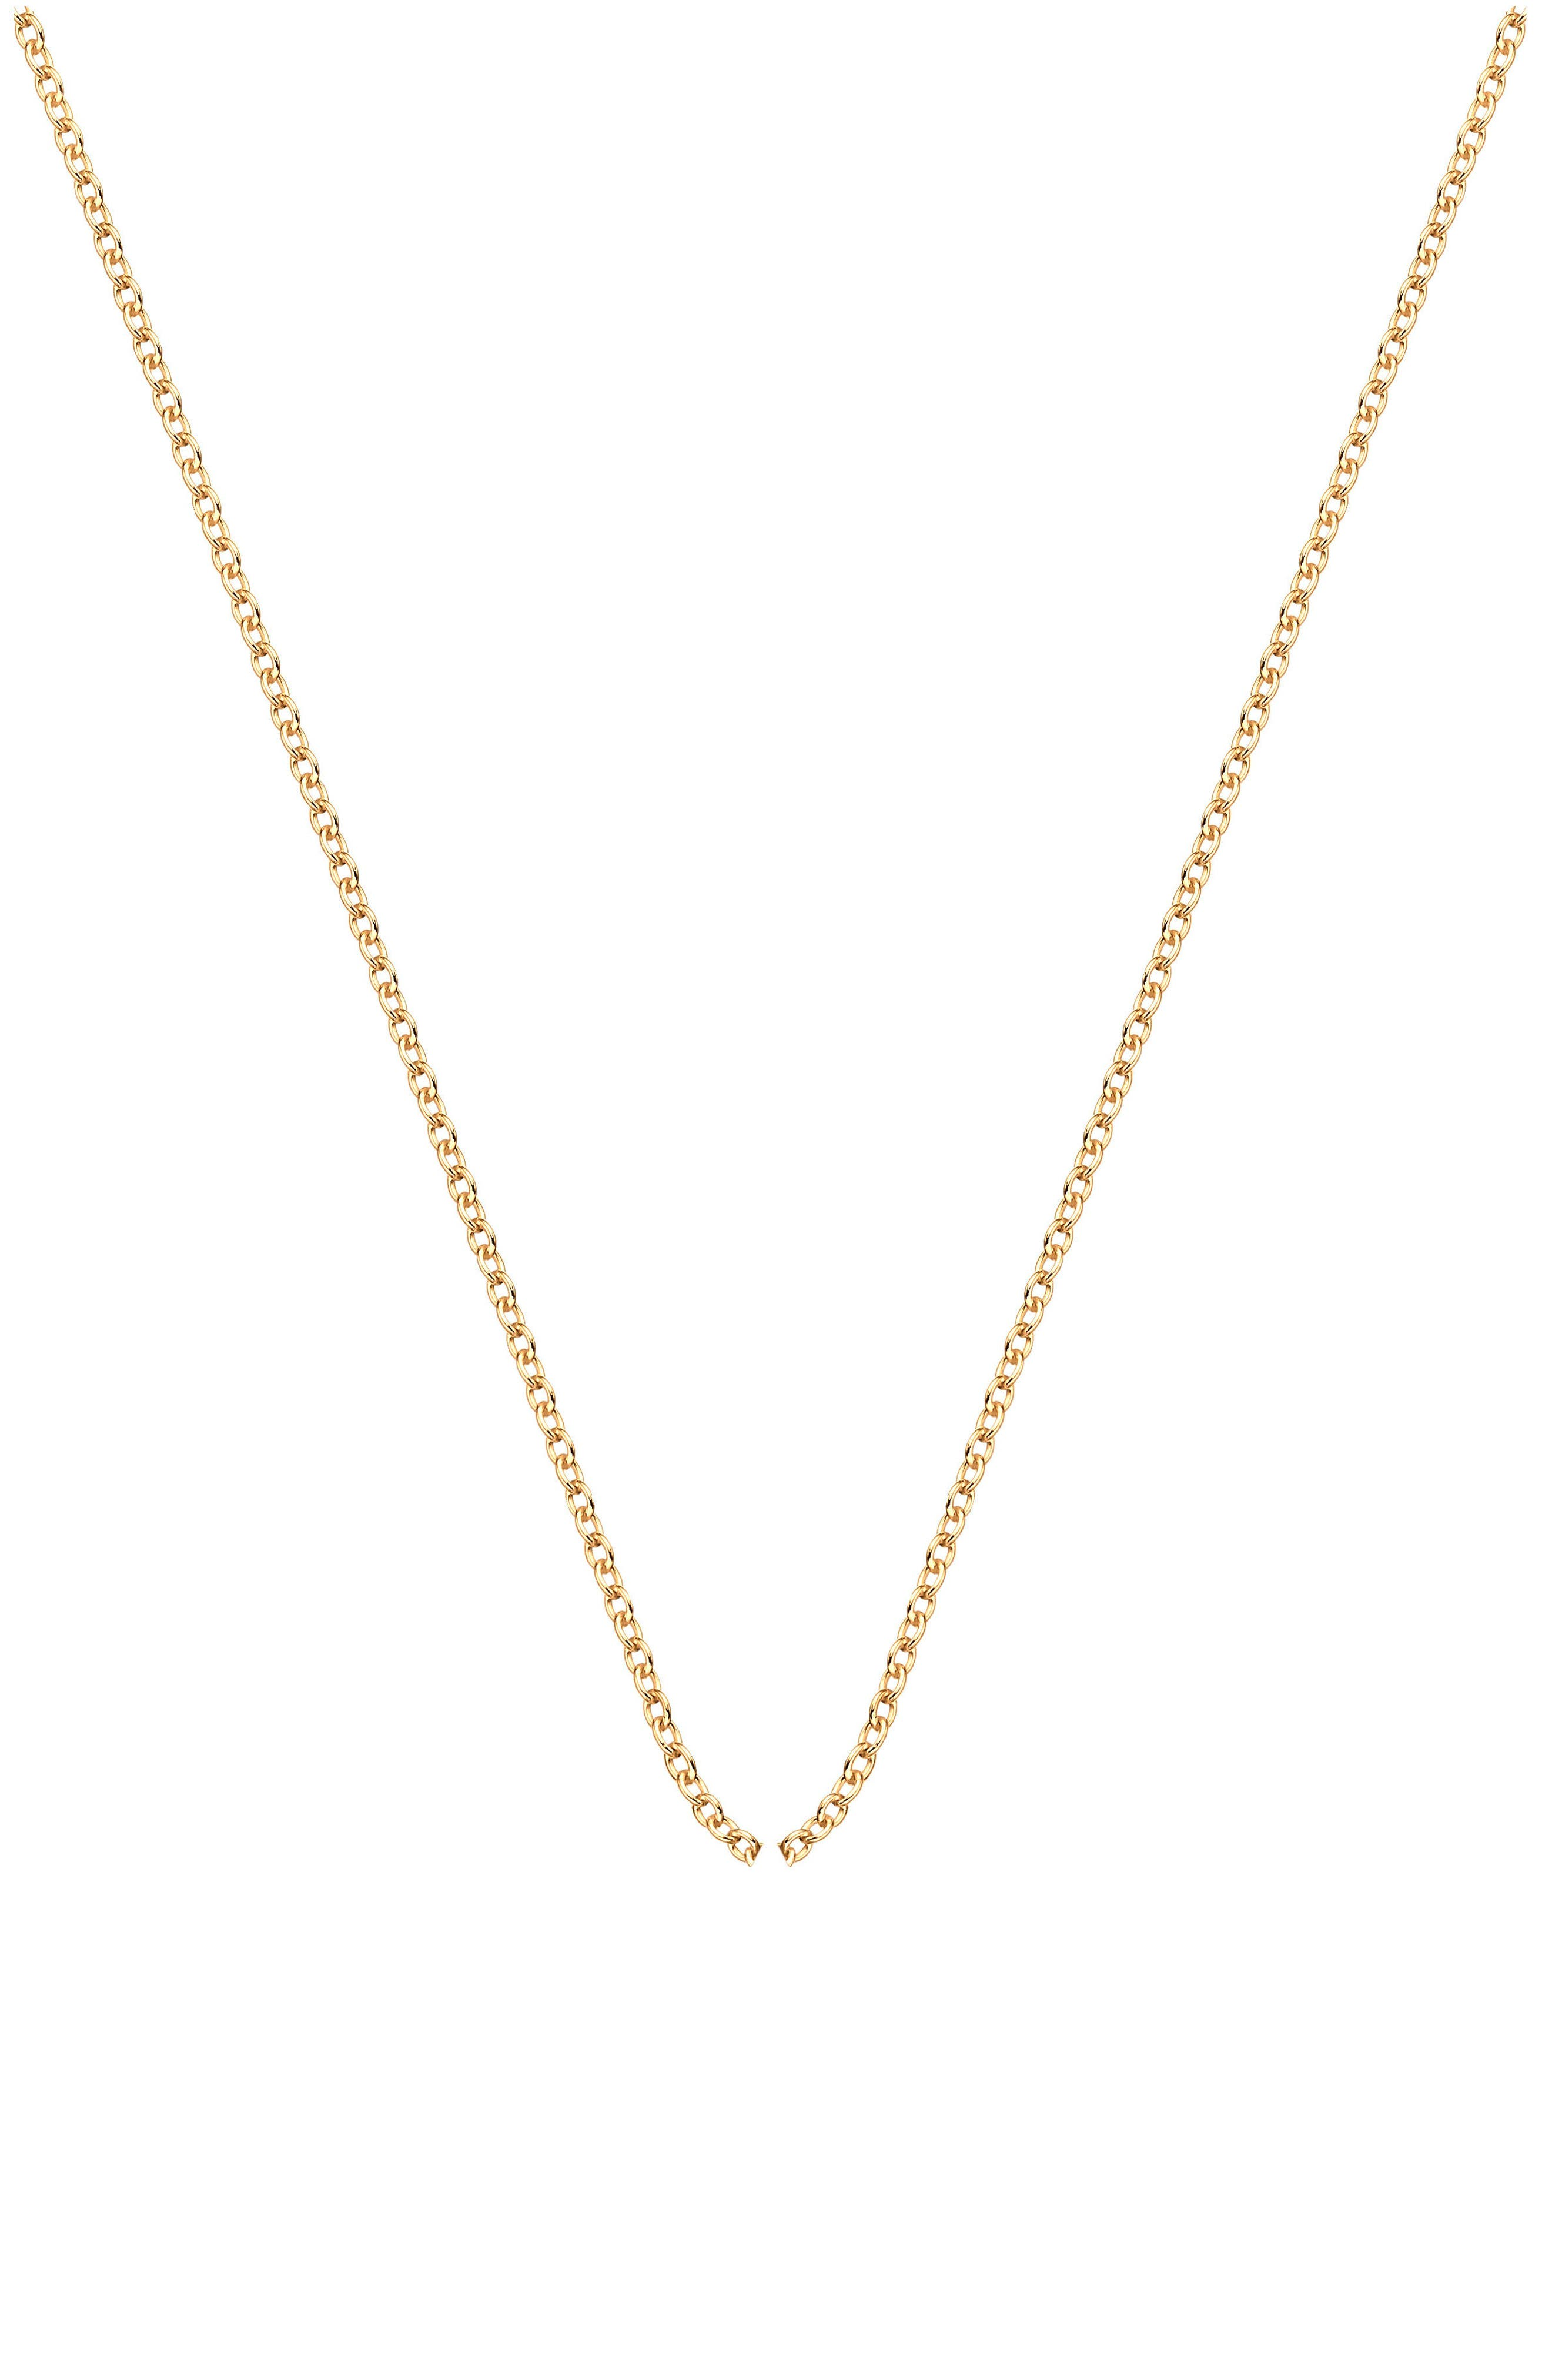 Rolo Chain Necklace,                             Main thumbnail 1, color,                             YELLOW GOLD